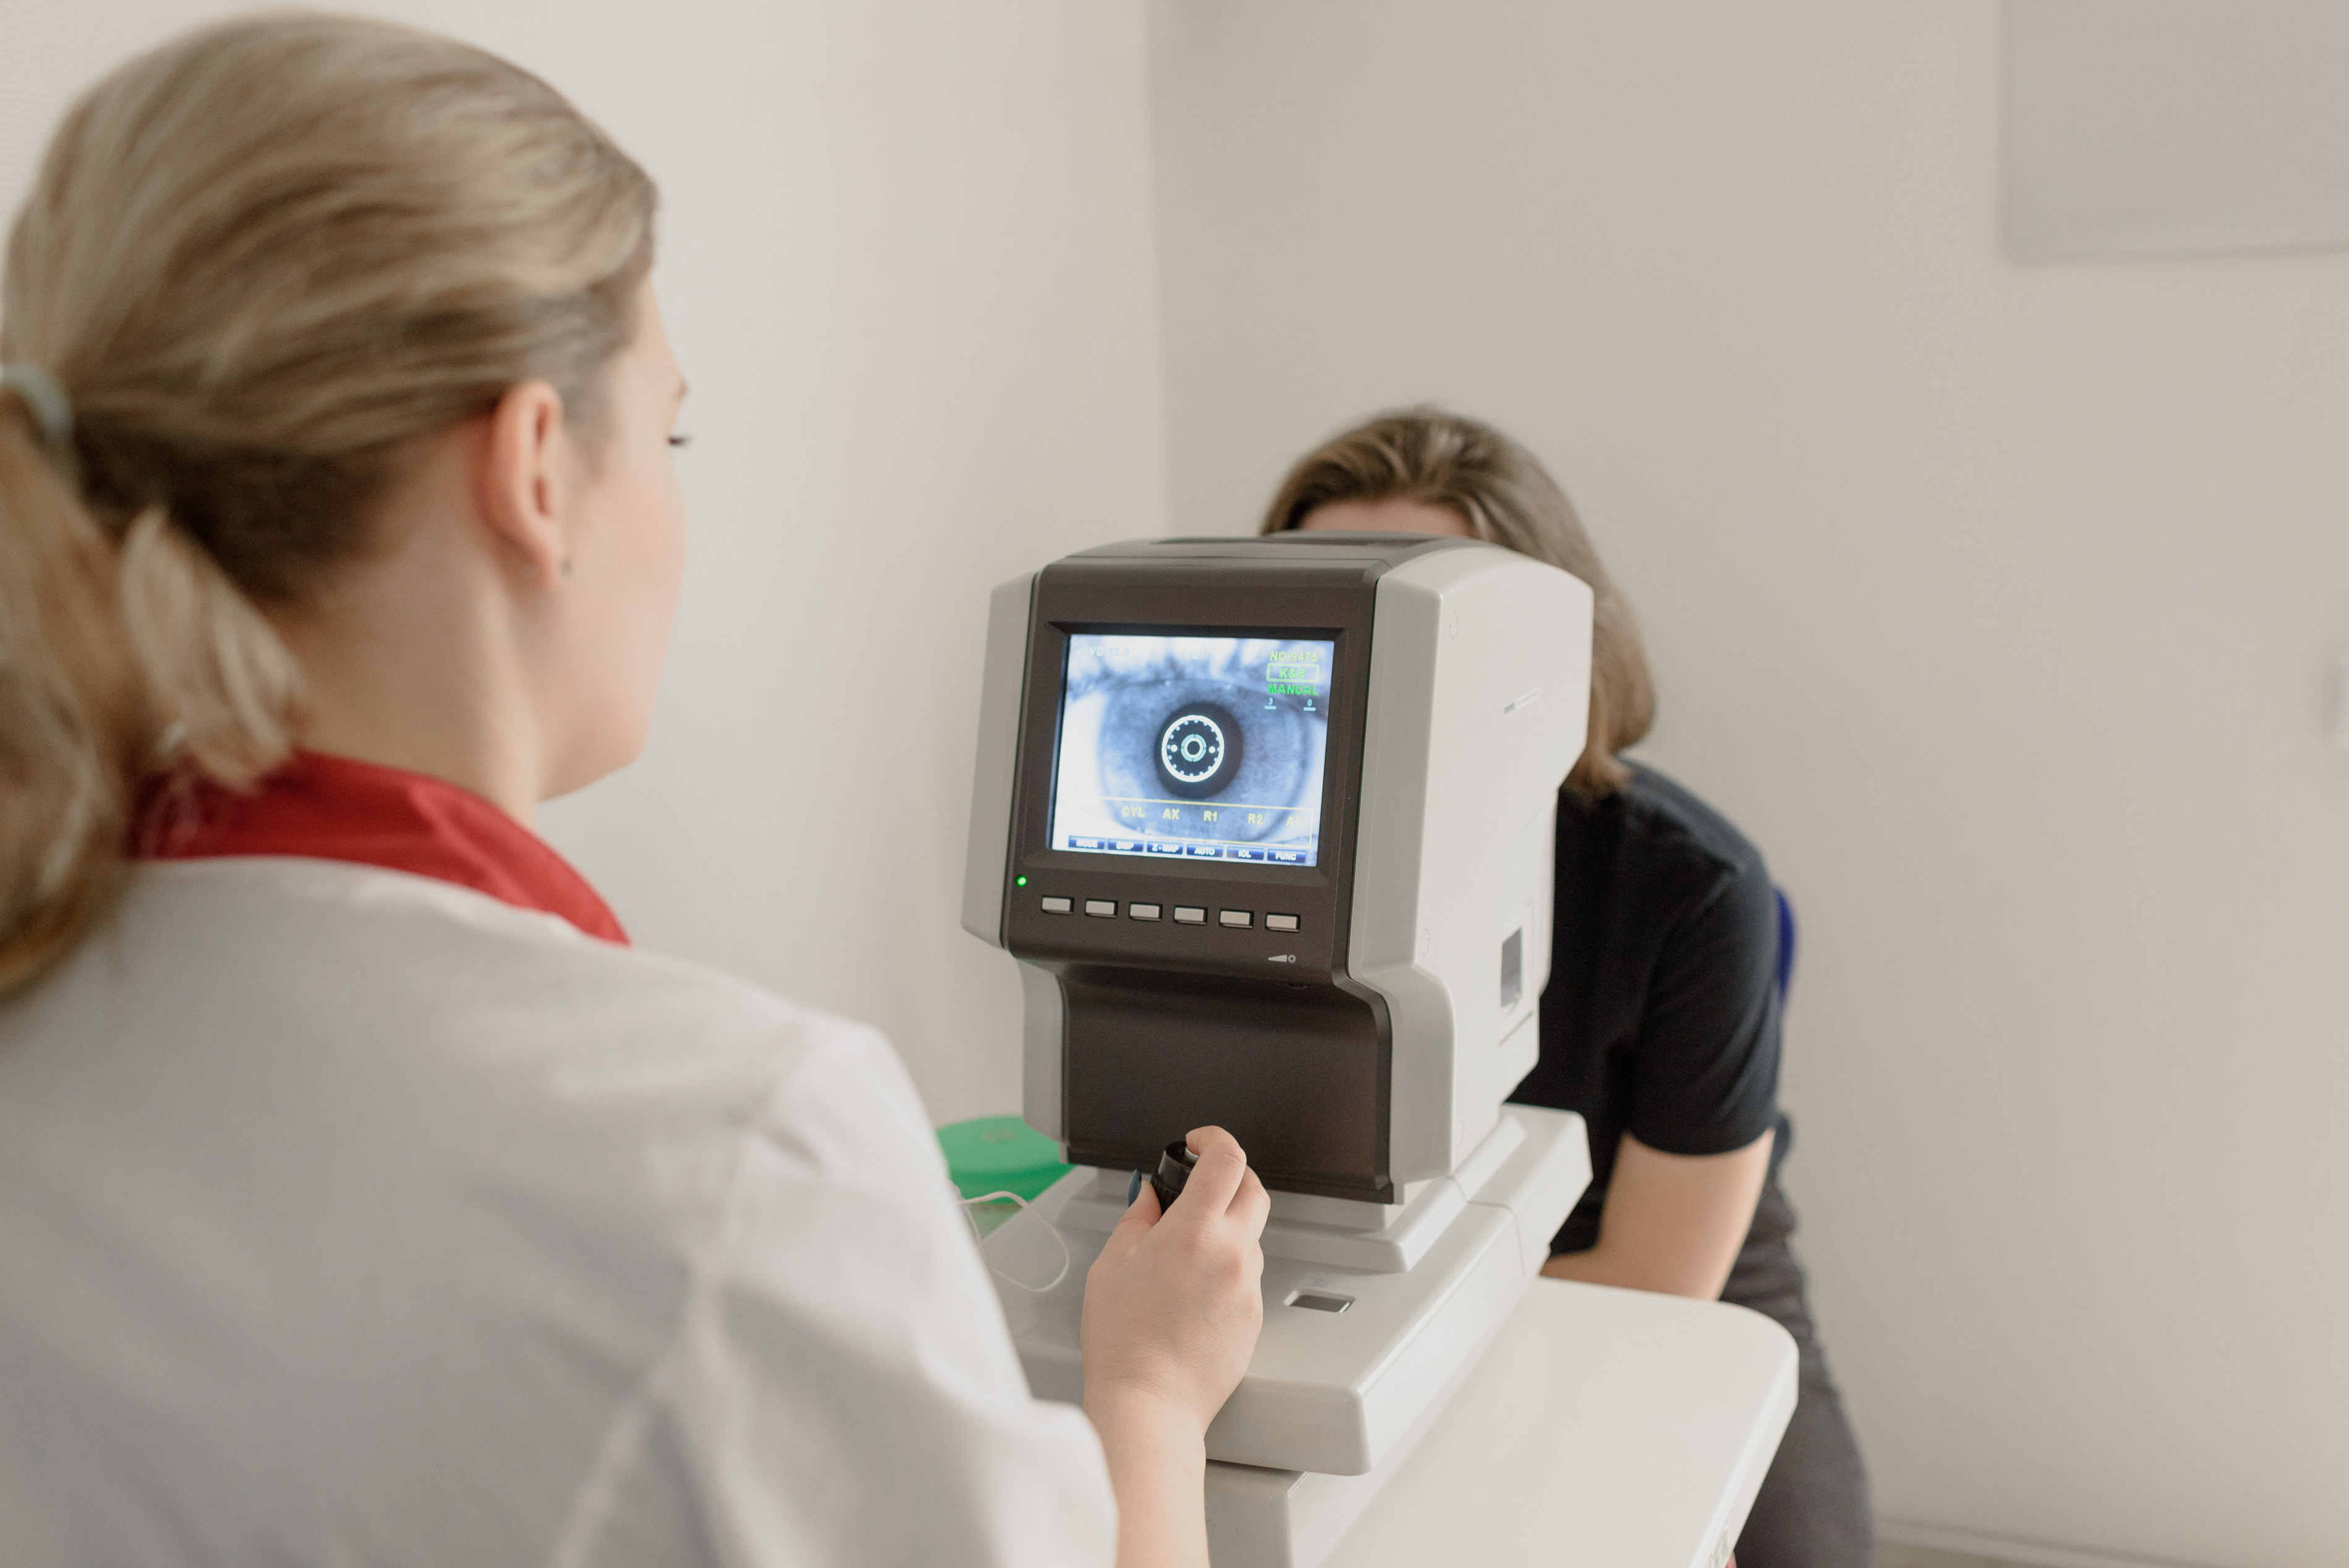 An Eye Examination Can Help Detect And Treat Disease